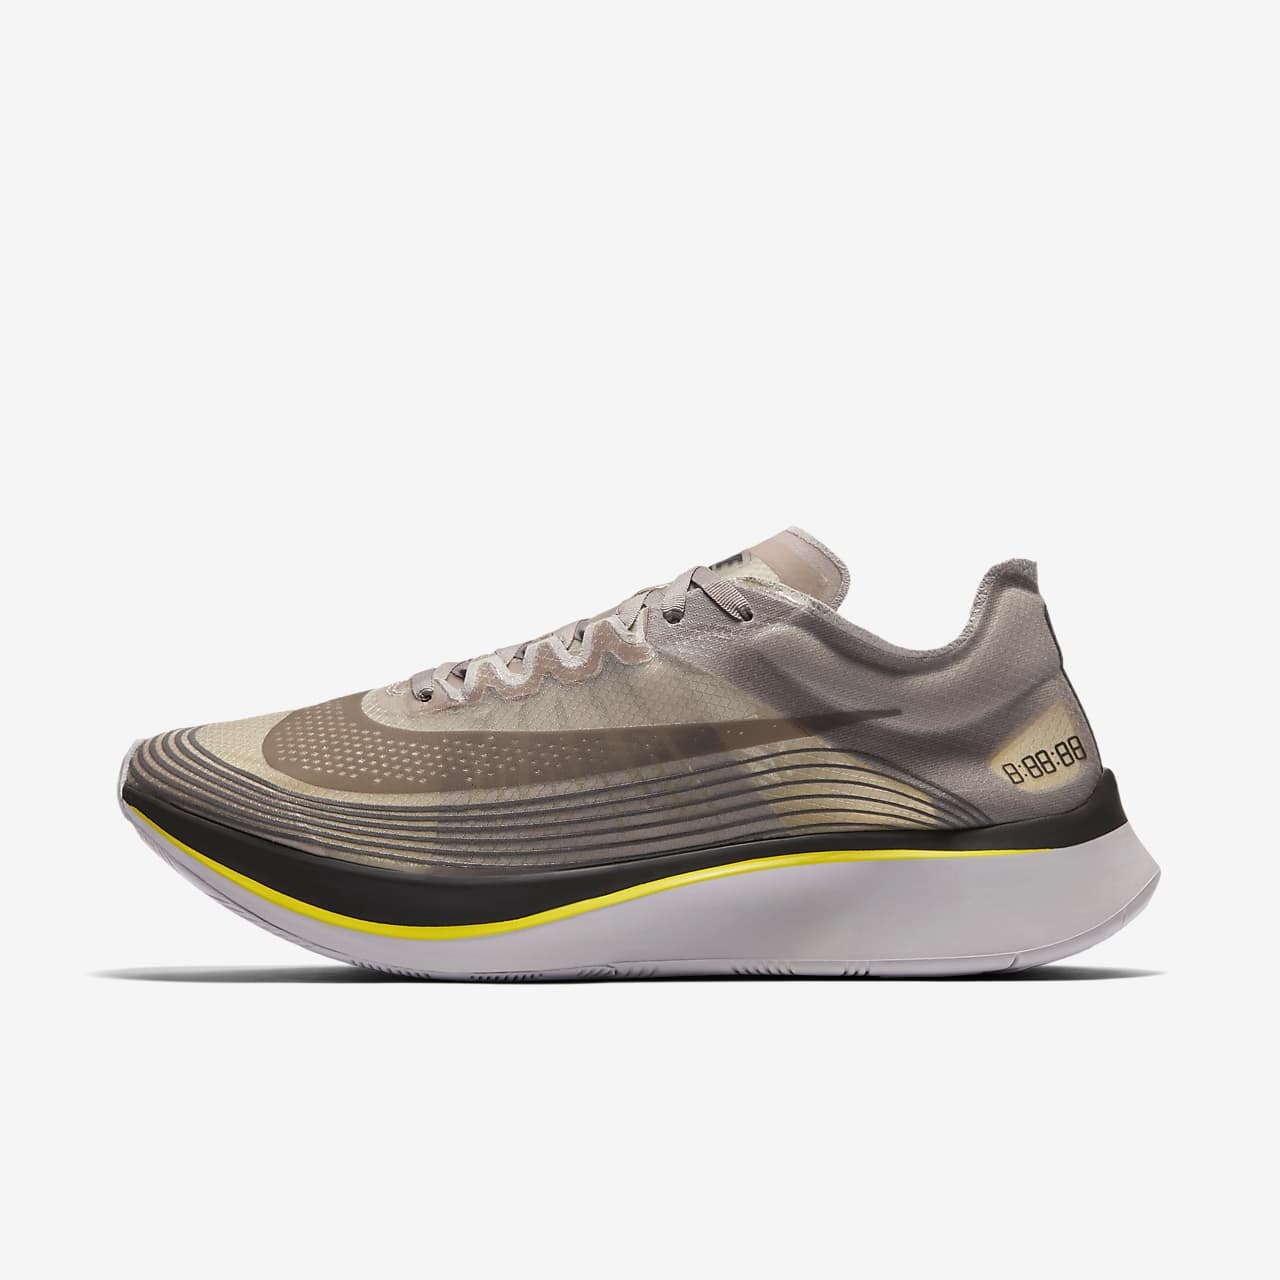 Chaussure de running mixte Nike Zoom Fly SP